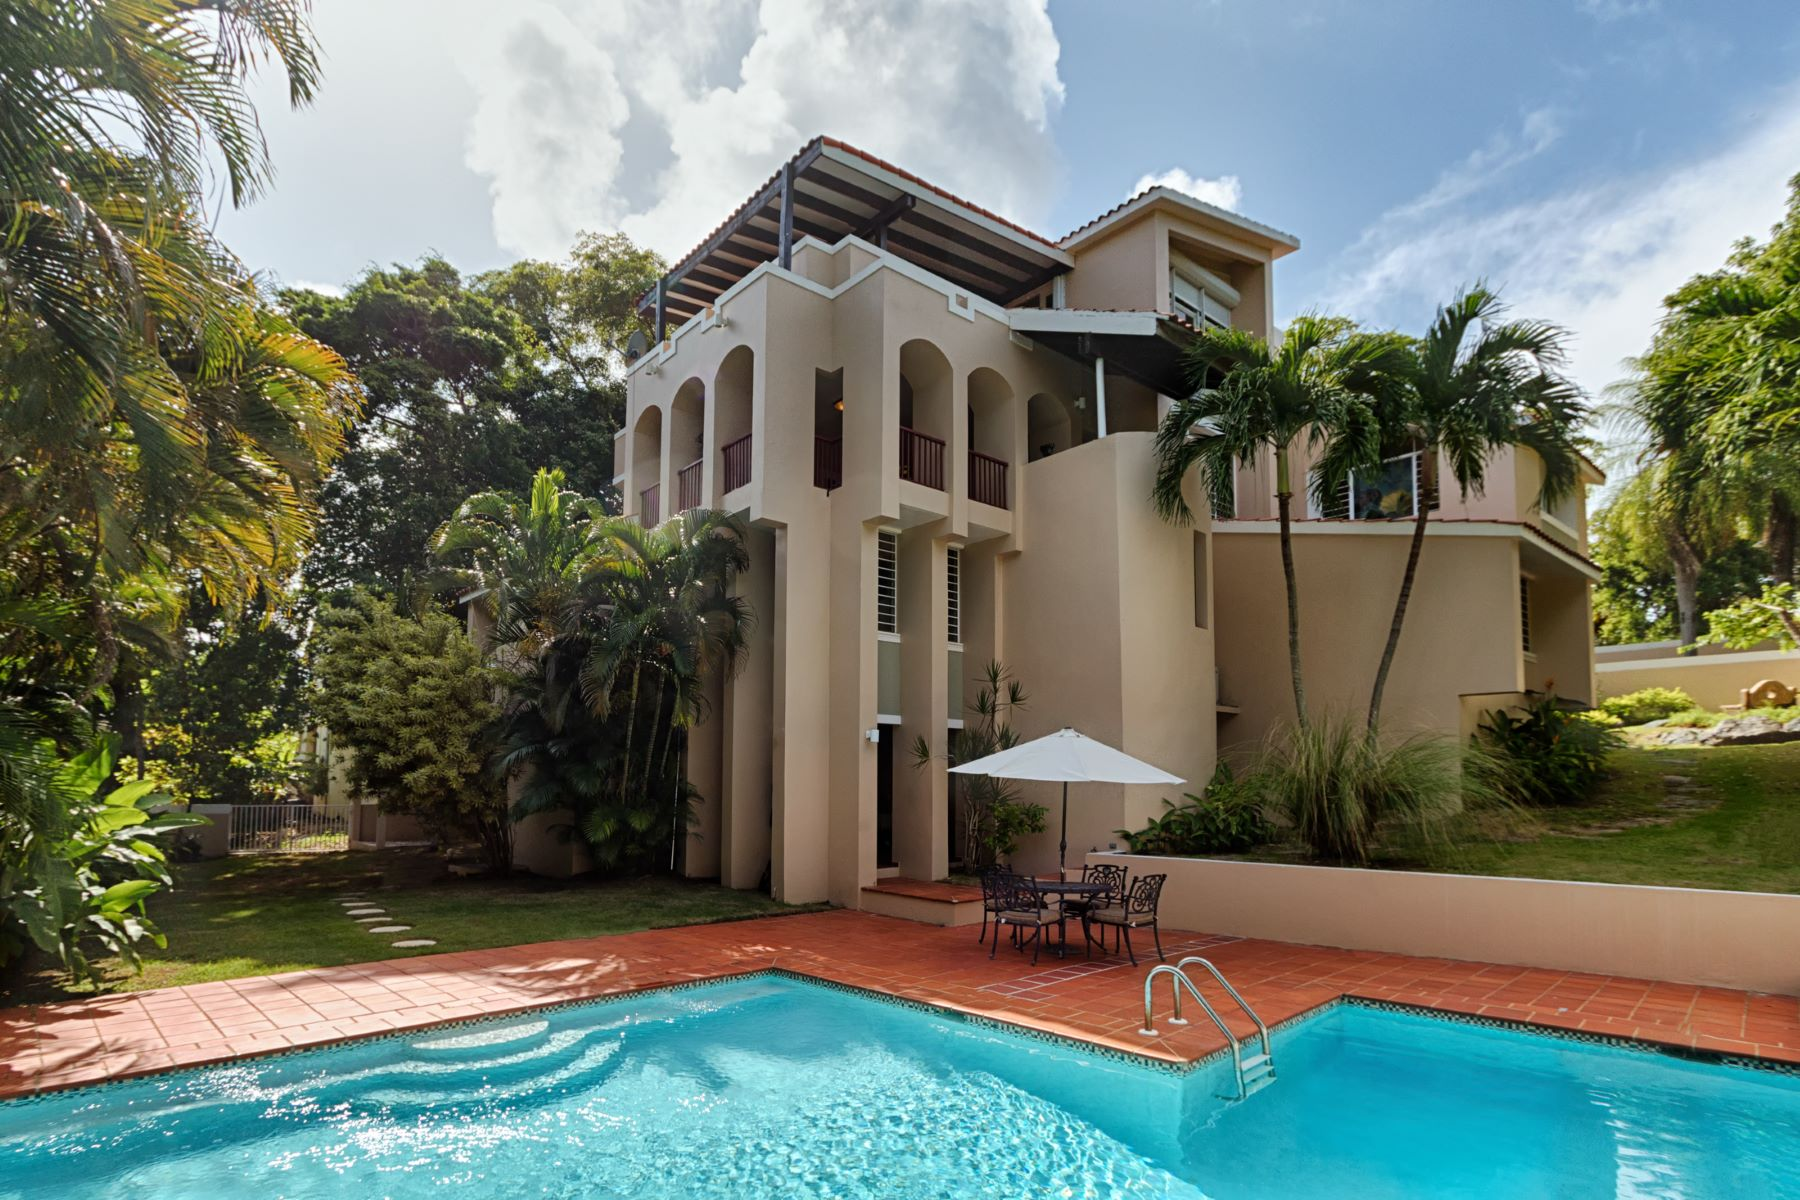 Casa Unifamiliar por un Venta en Desirable Living at Harbour View 47 Harbour View Palmas Del Mar, 00791 Puerto Rico